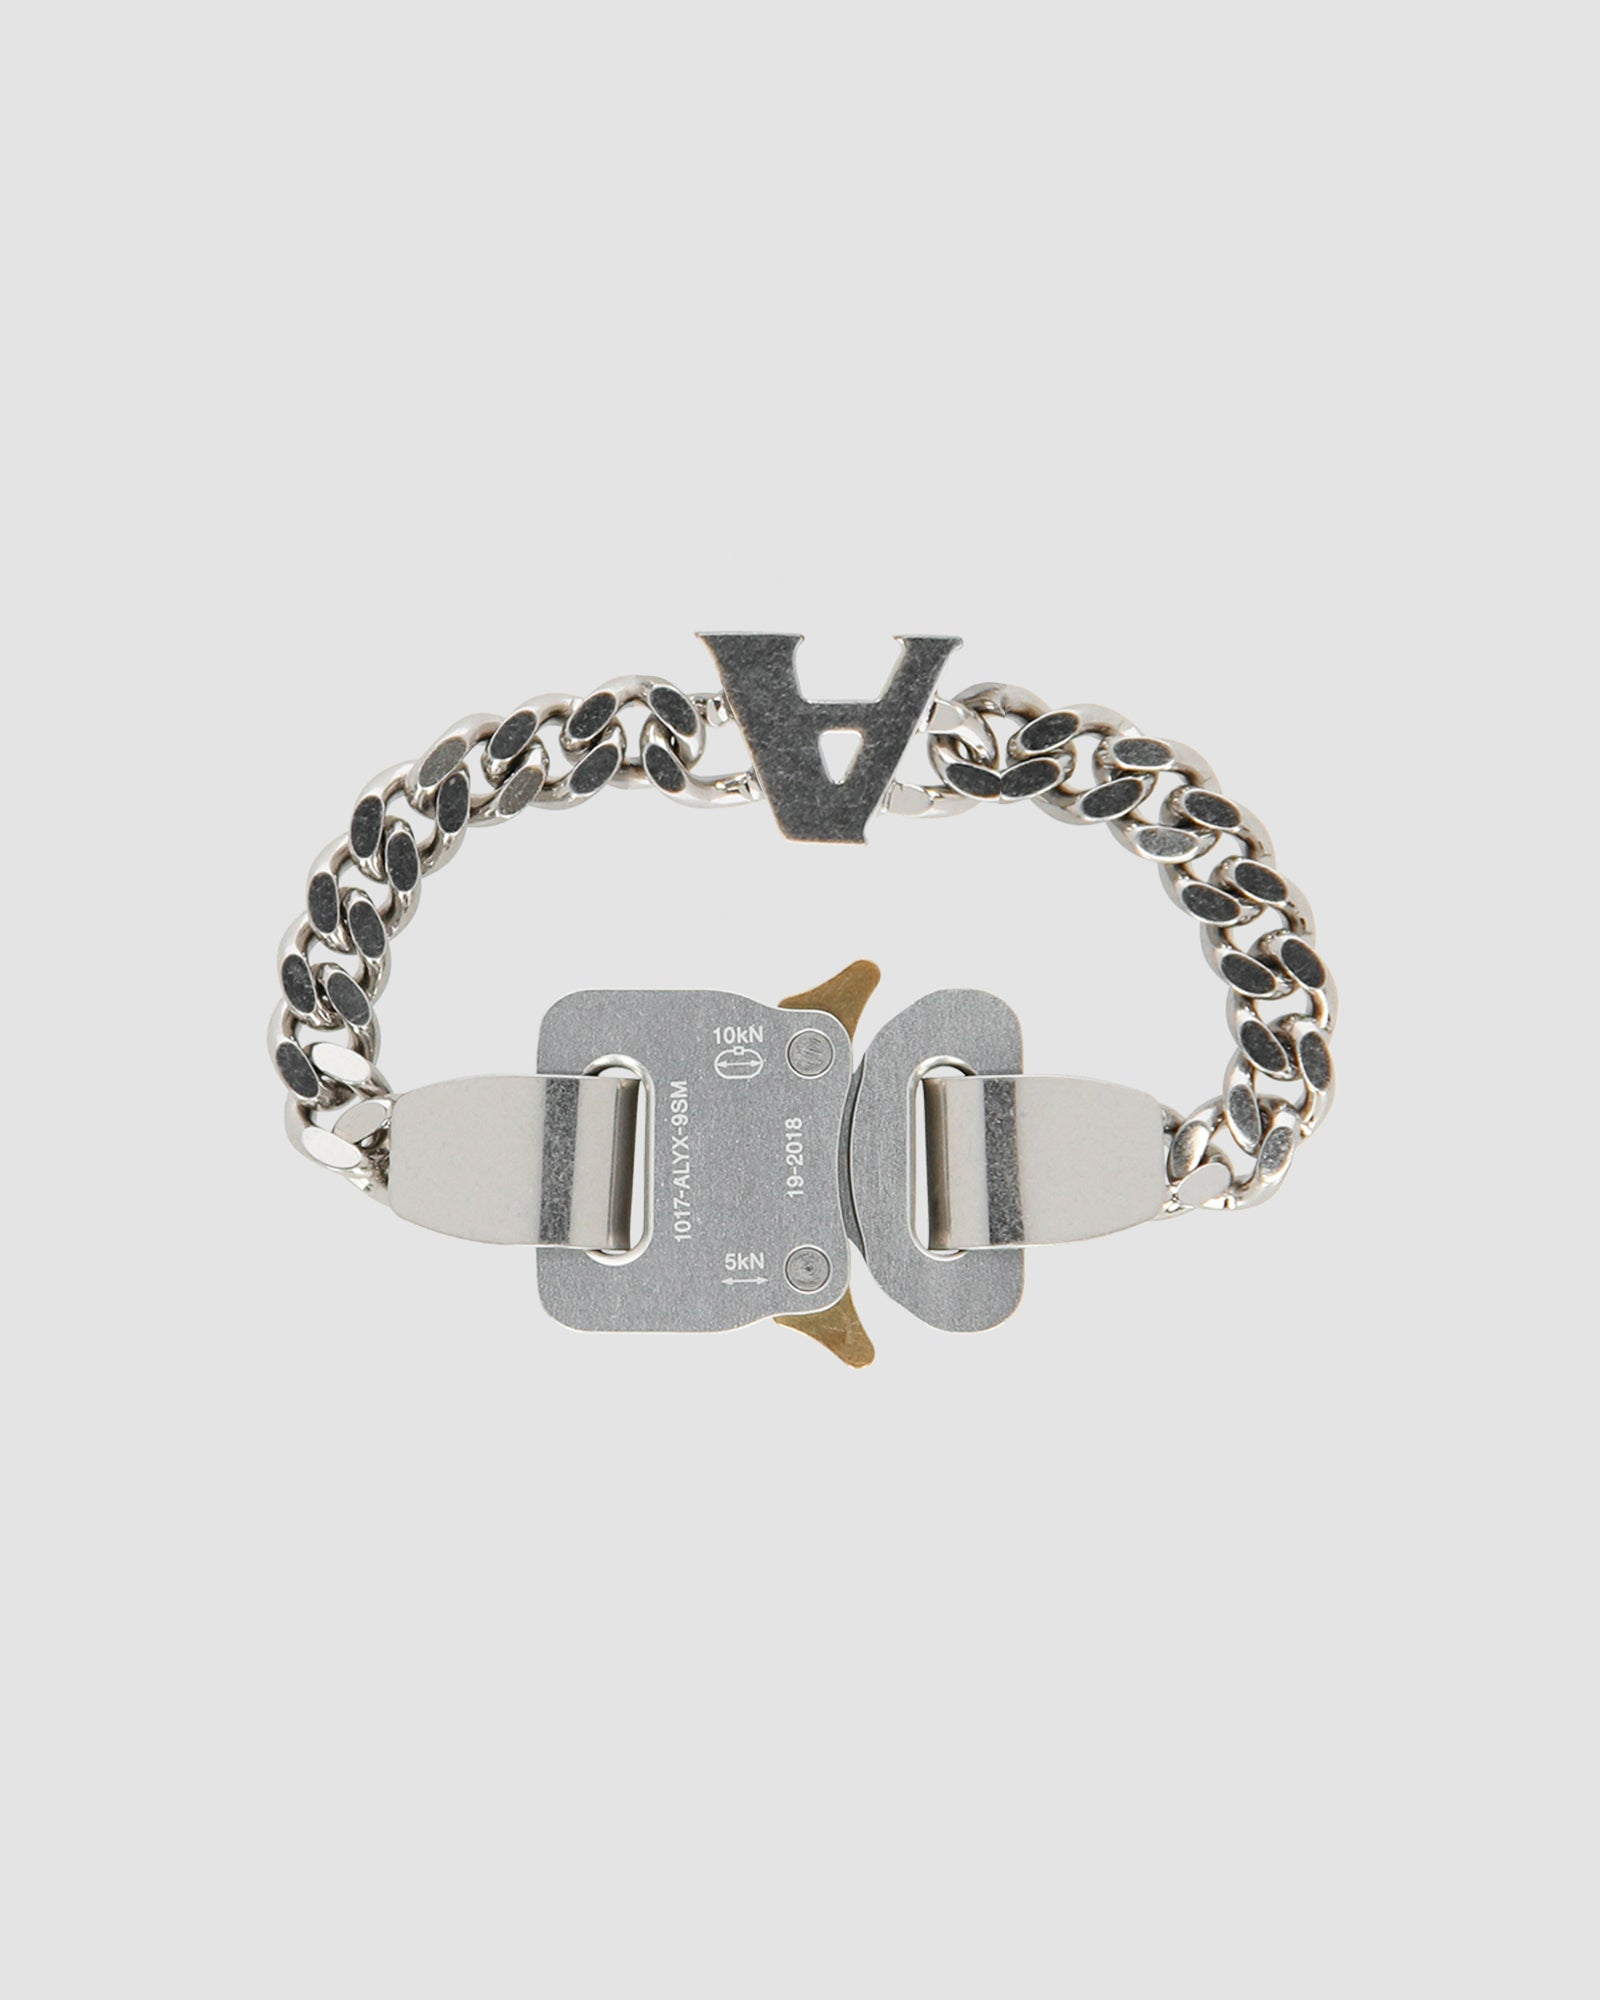 CLASSIC CHAINLINK BRACELET WITH EXCLUSIVE CHARM - IT